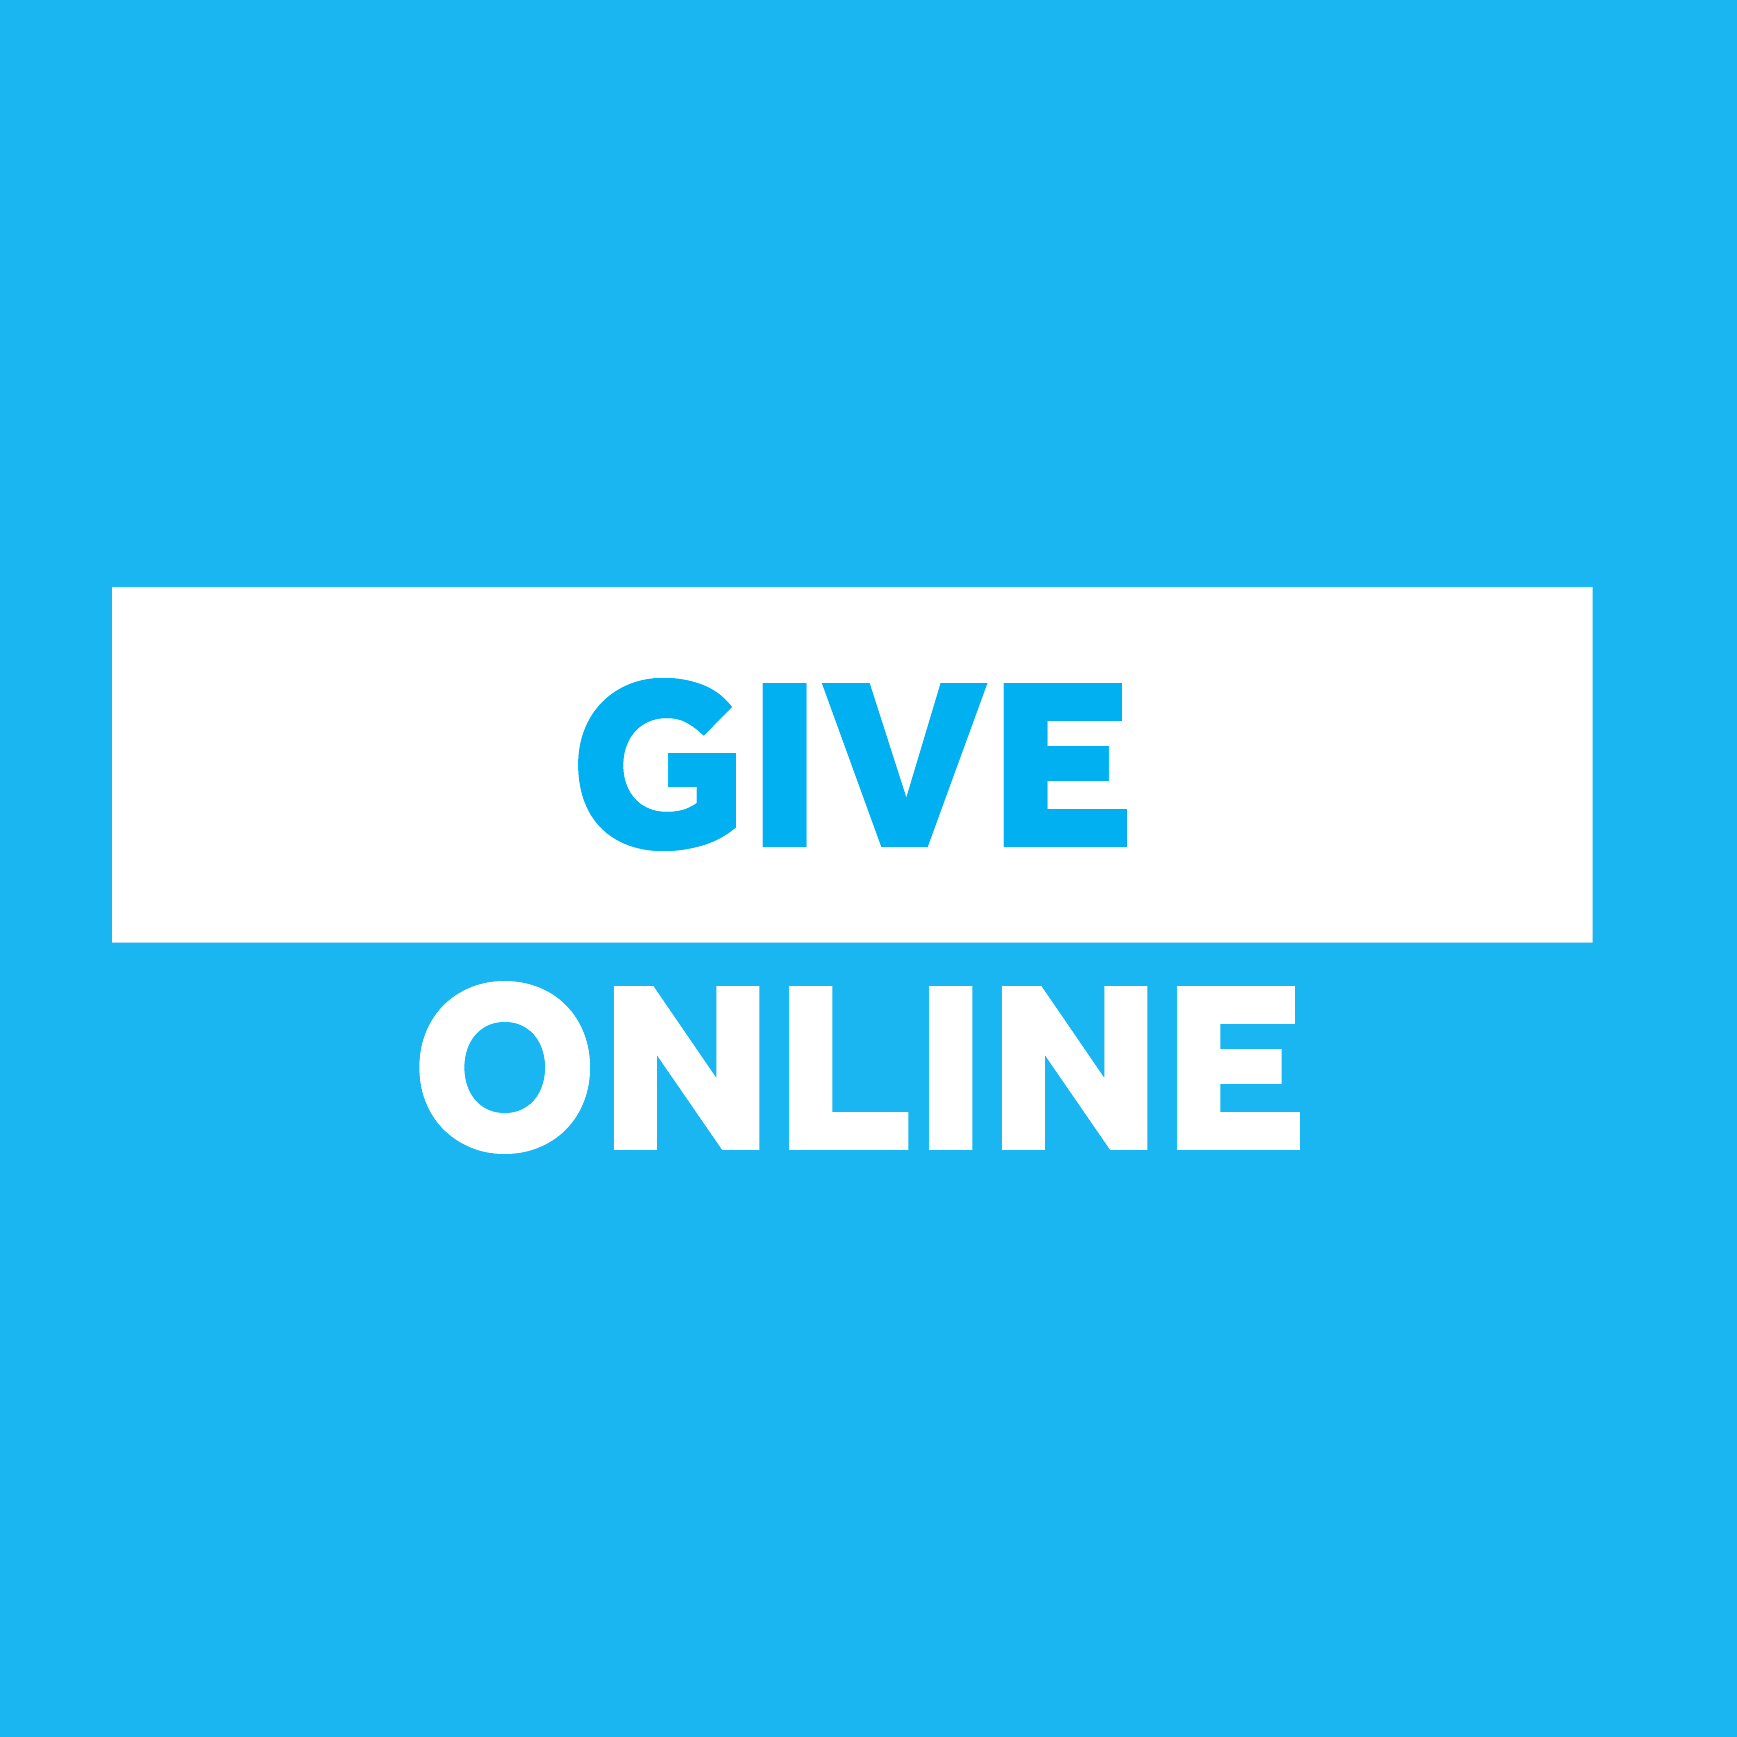 GIVE ONLINE.png